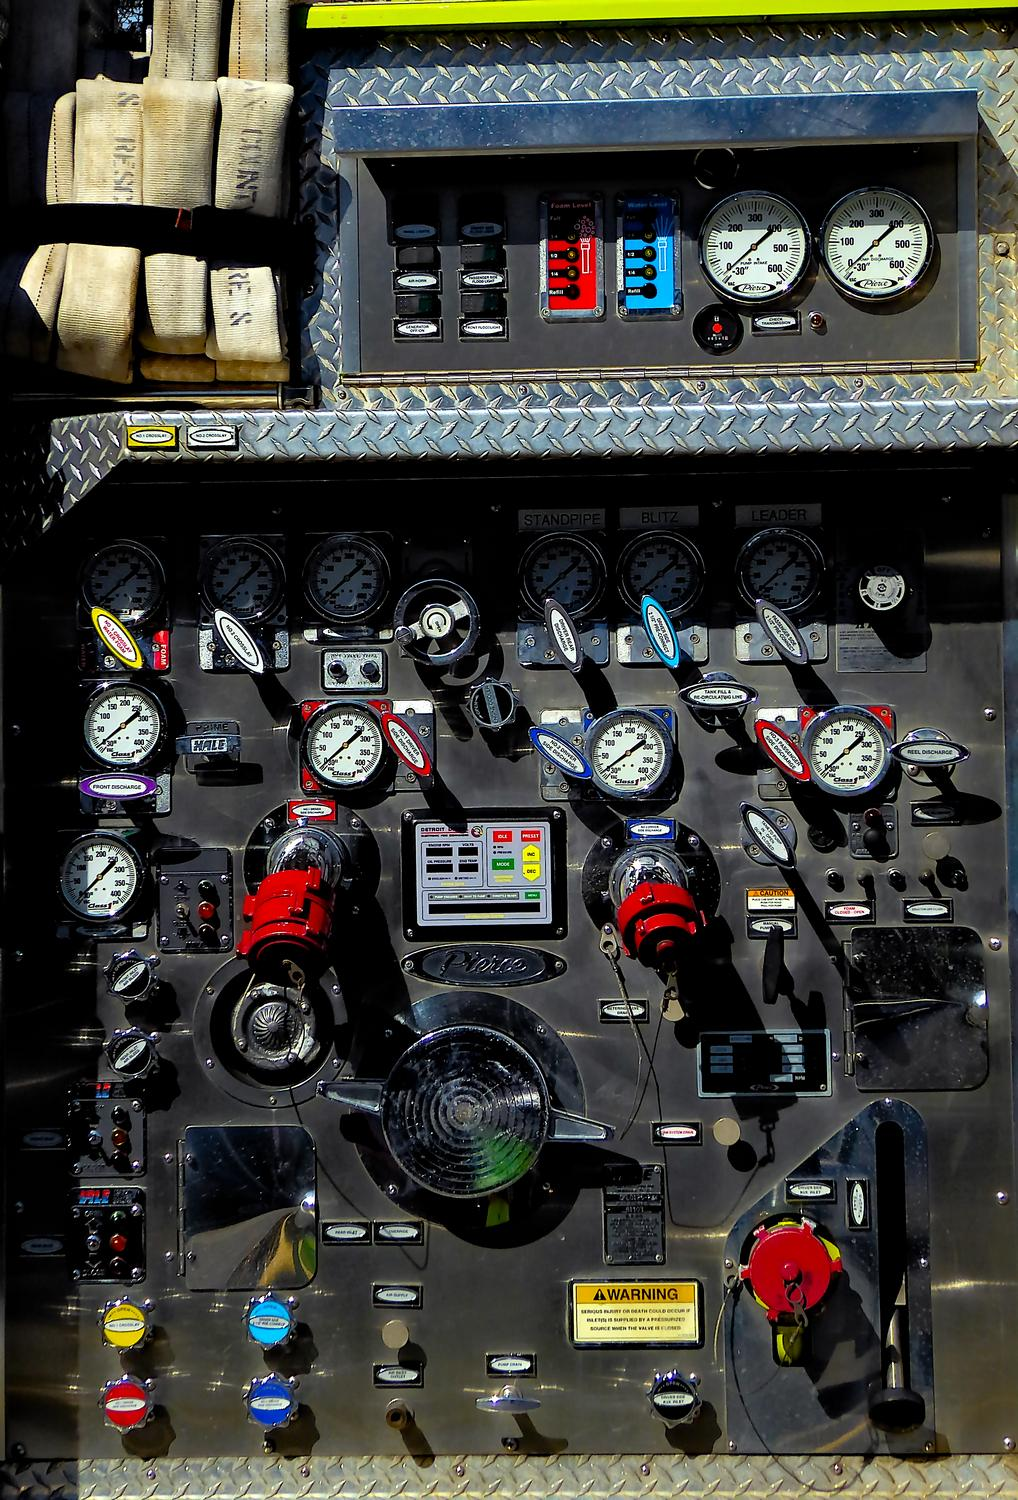 - Lots of valves and gauges on the side of this fire truck. - Panasonic DMC-ZS40, DMC-ZS50, DMC-LF1 - Tony Karp, design, art, photography, techno-impressionist, techno-impressionism, aerial photography , drone , drones , dji , mavic pro , video , 3D printing - Books -